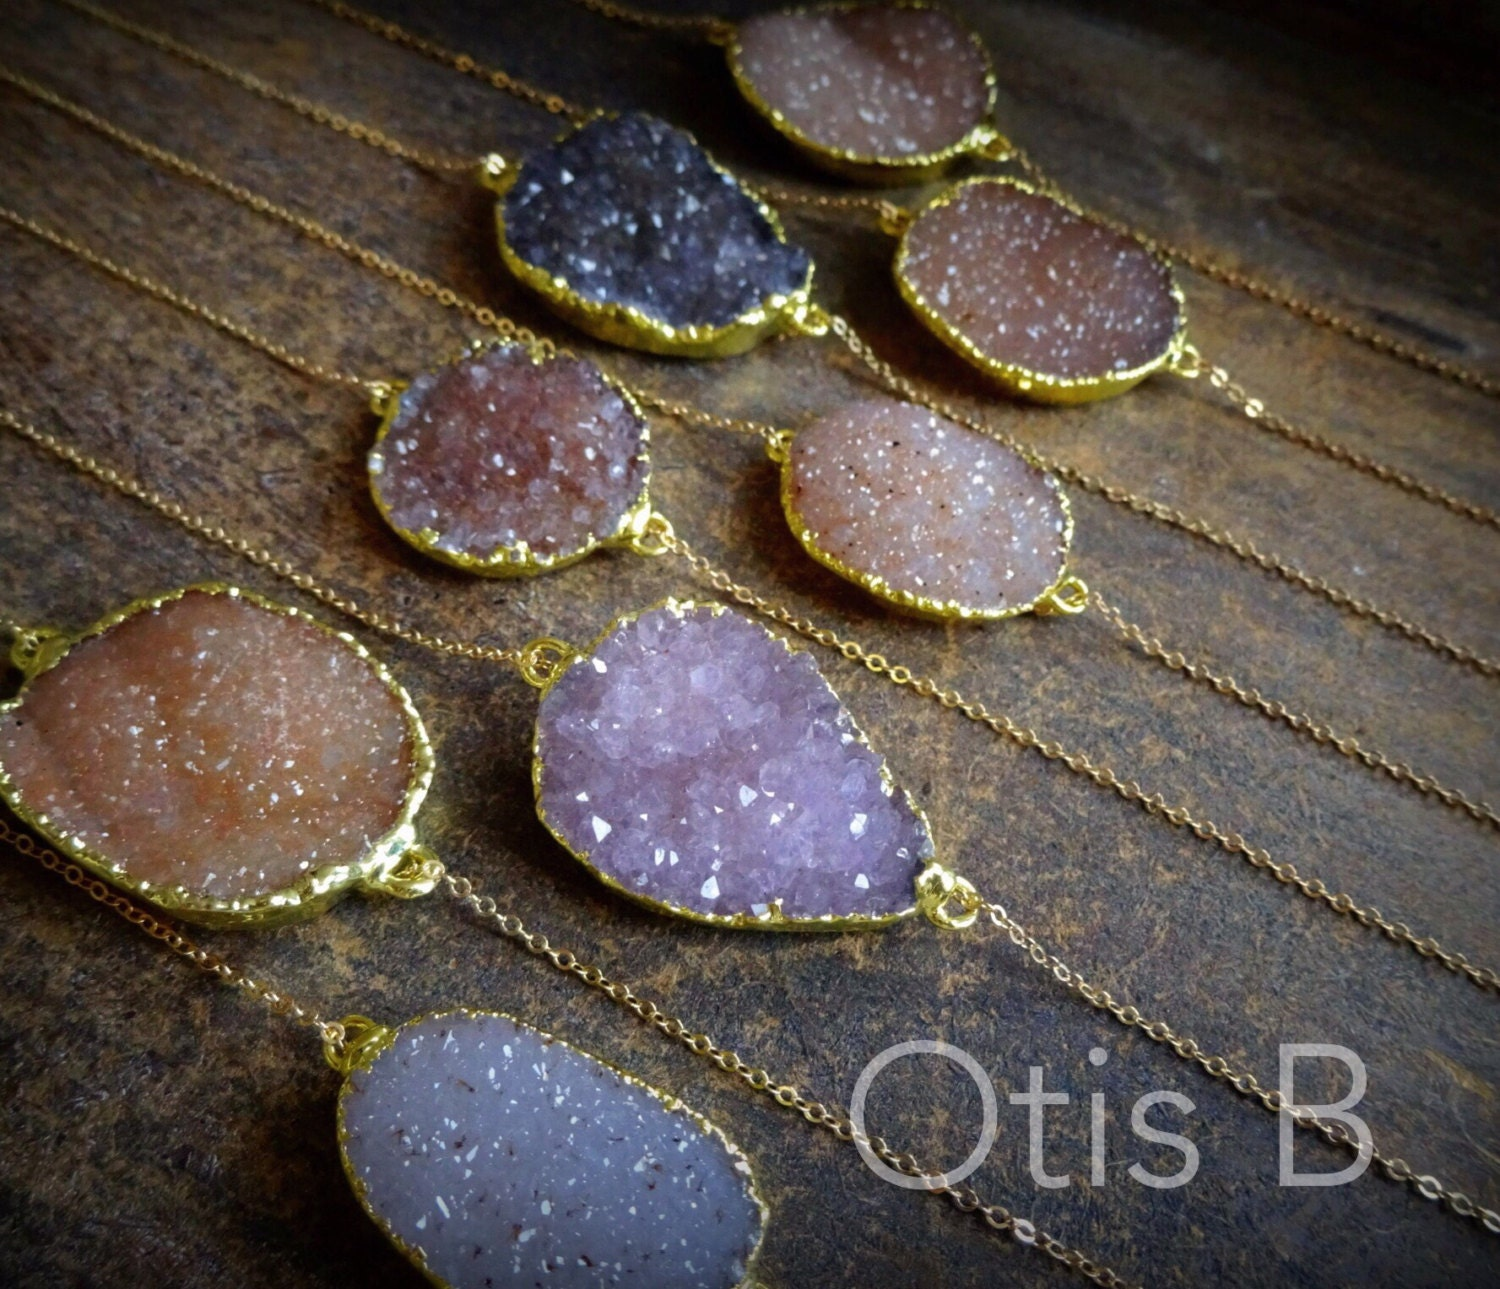 Agate druzy necklace, trending fashion accesories, boho, rock crystals, geode, minerals, Otis B, gold Layering necklace, bohemian, gemstones